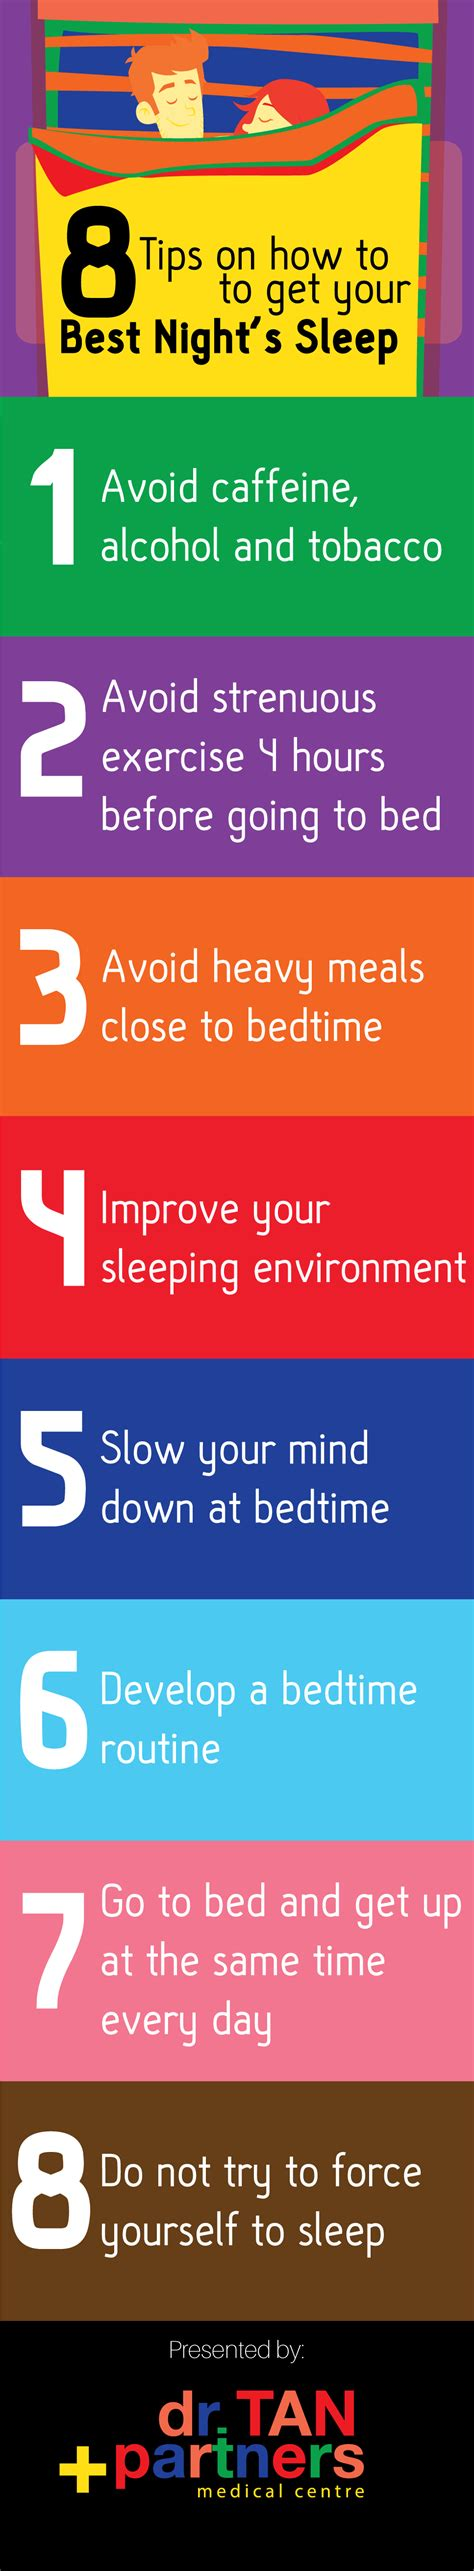 sleep aids for better quality sleep picture 2